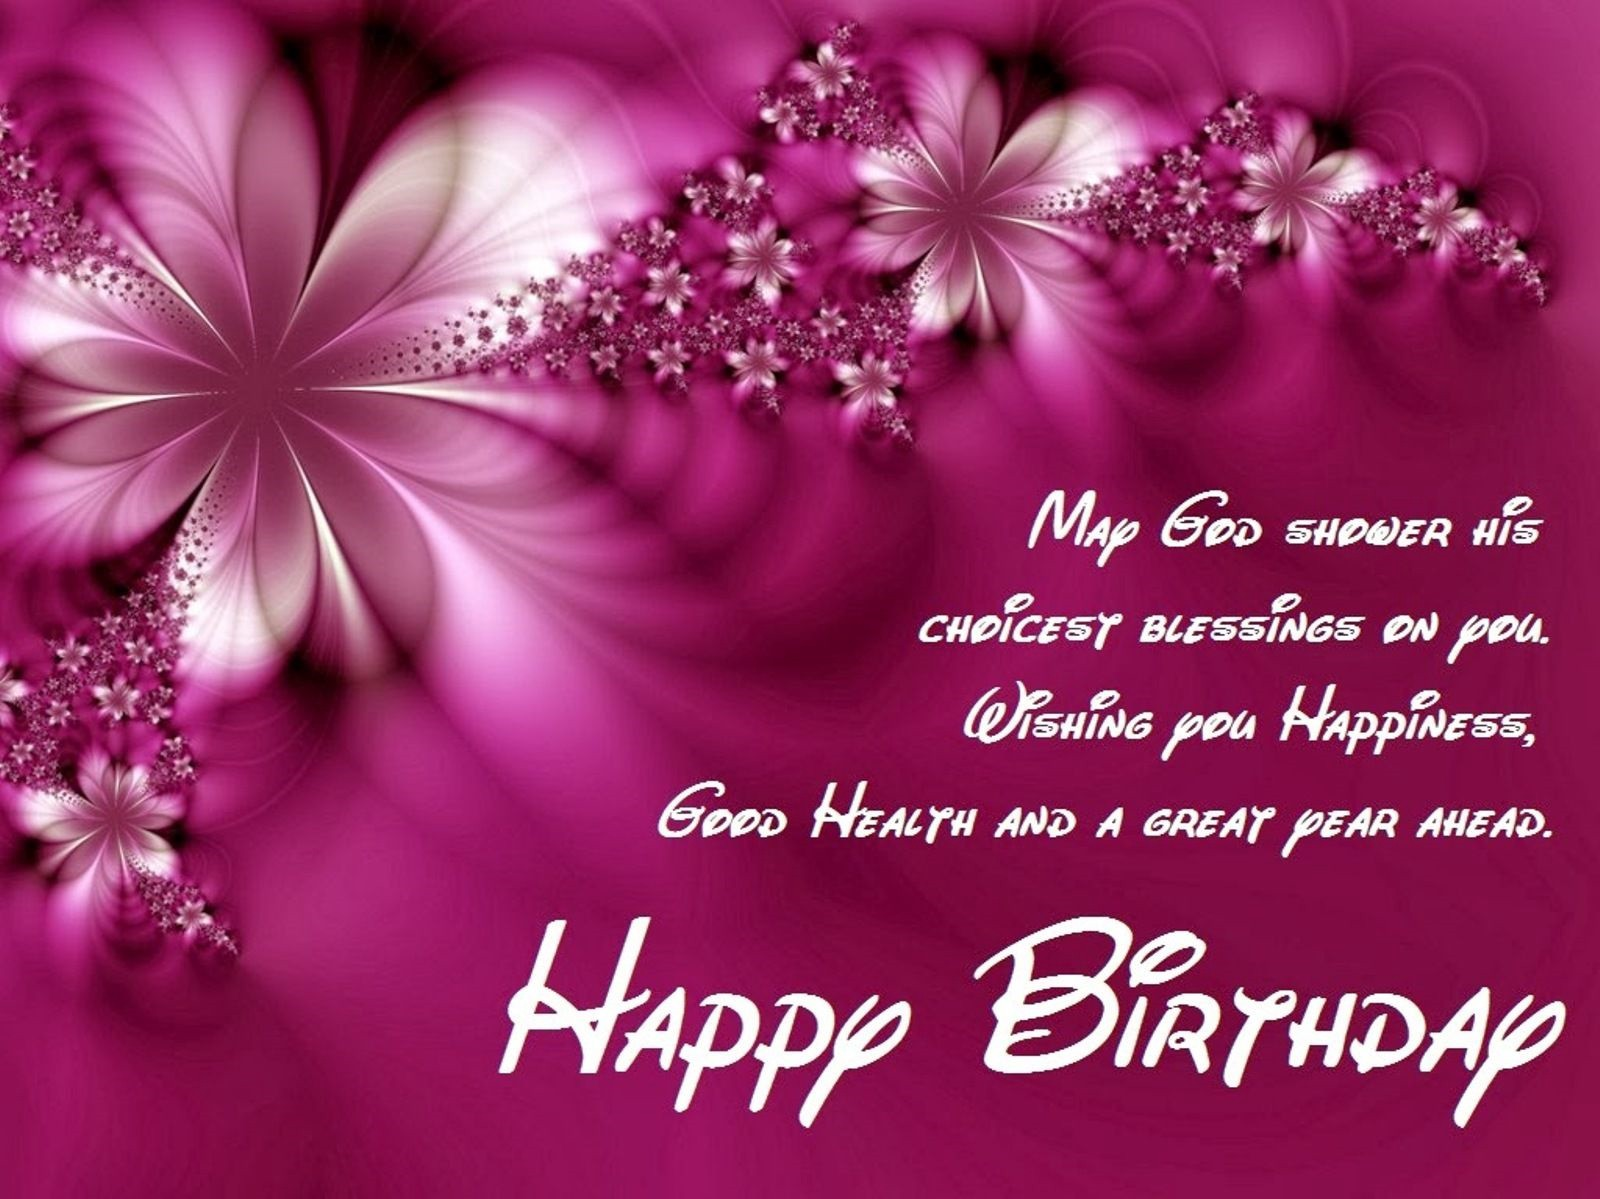 Celebrating Someone Special Birthday With Birthday Wishes – Special Birthday Cards for Someone Special